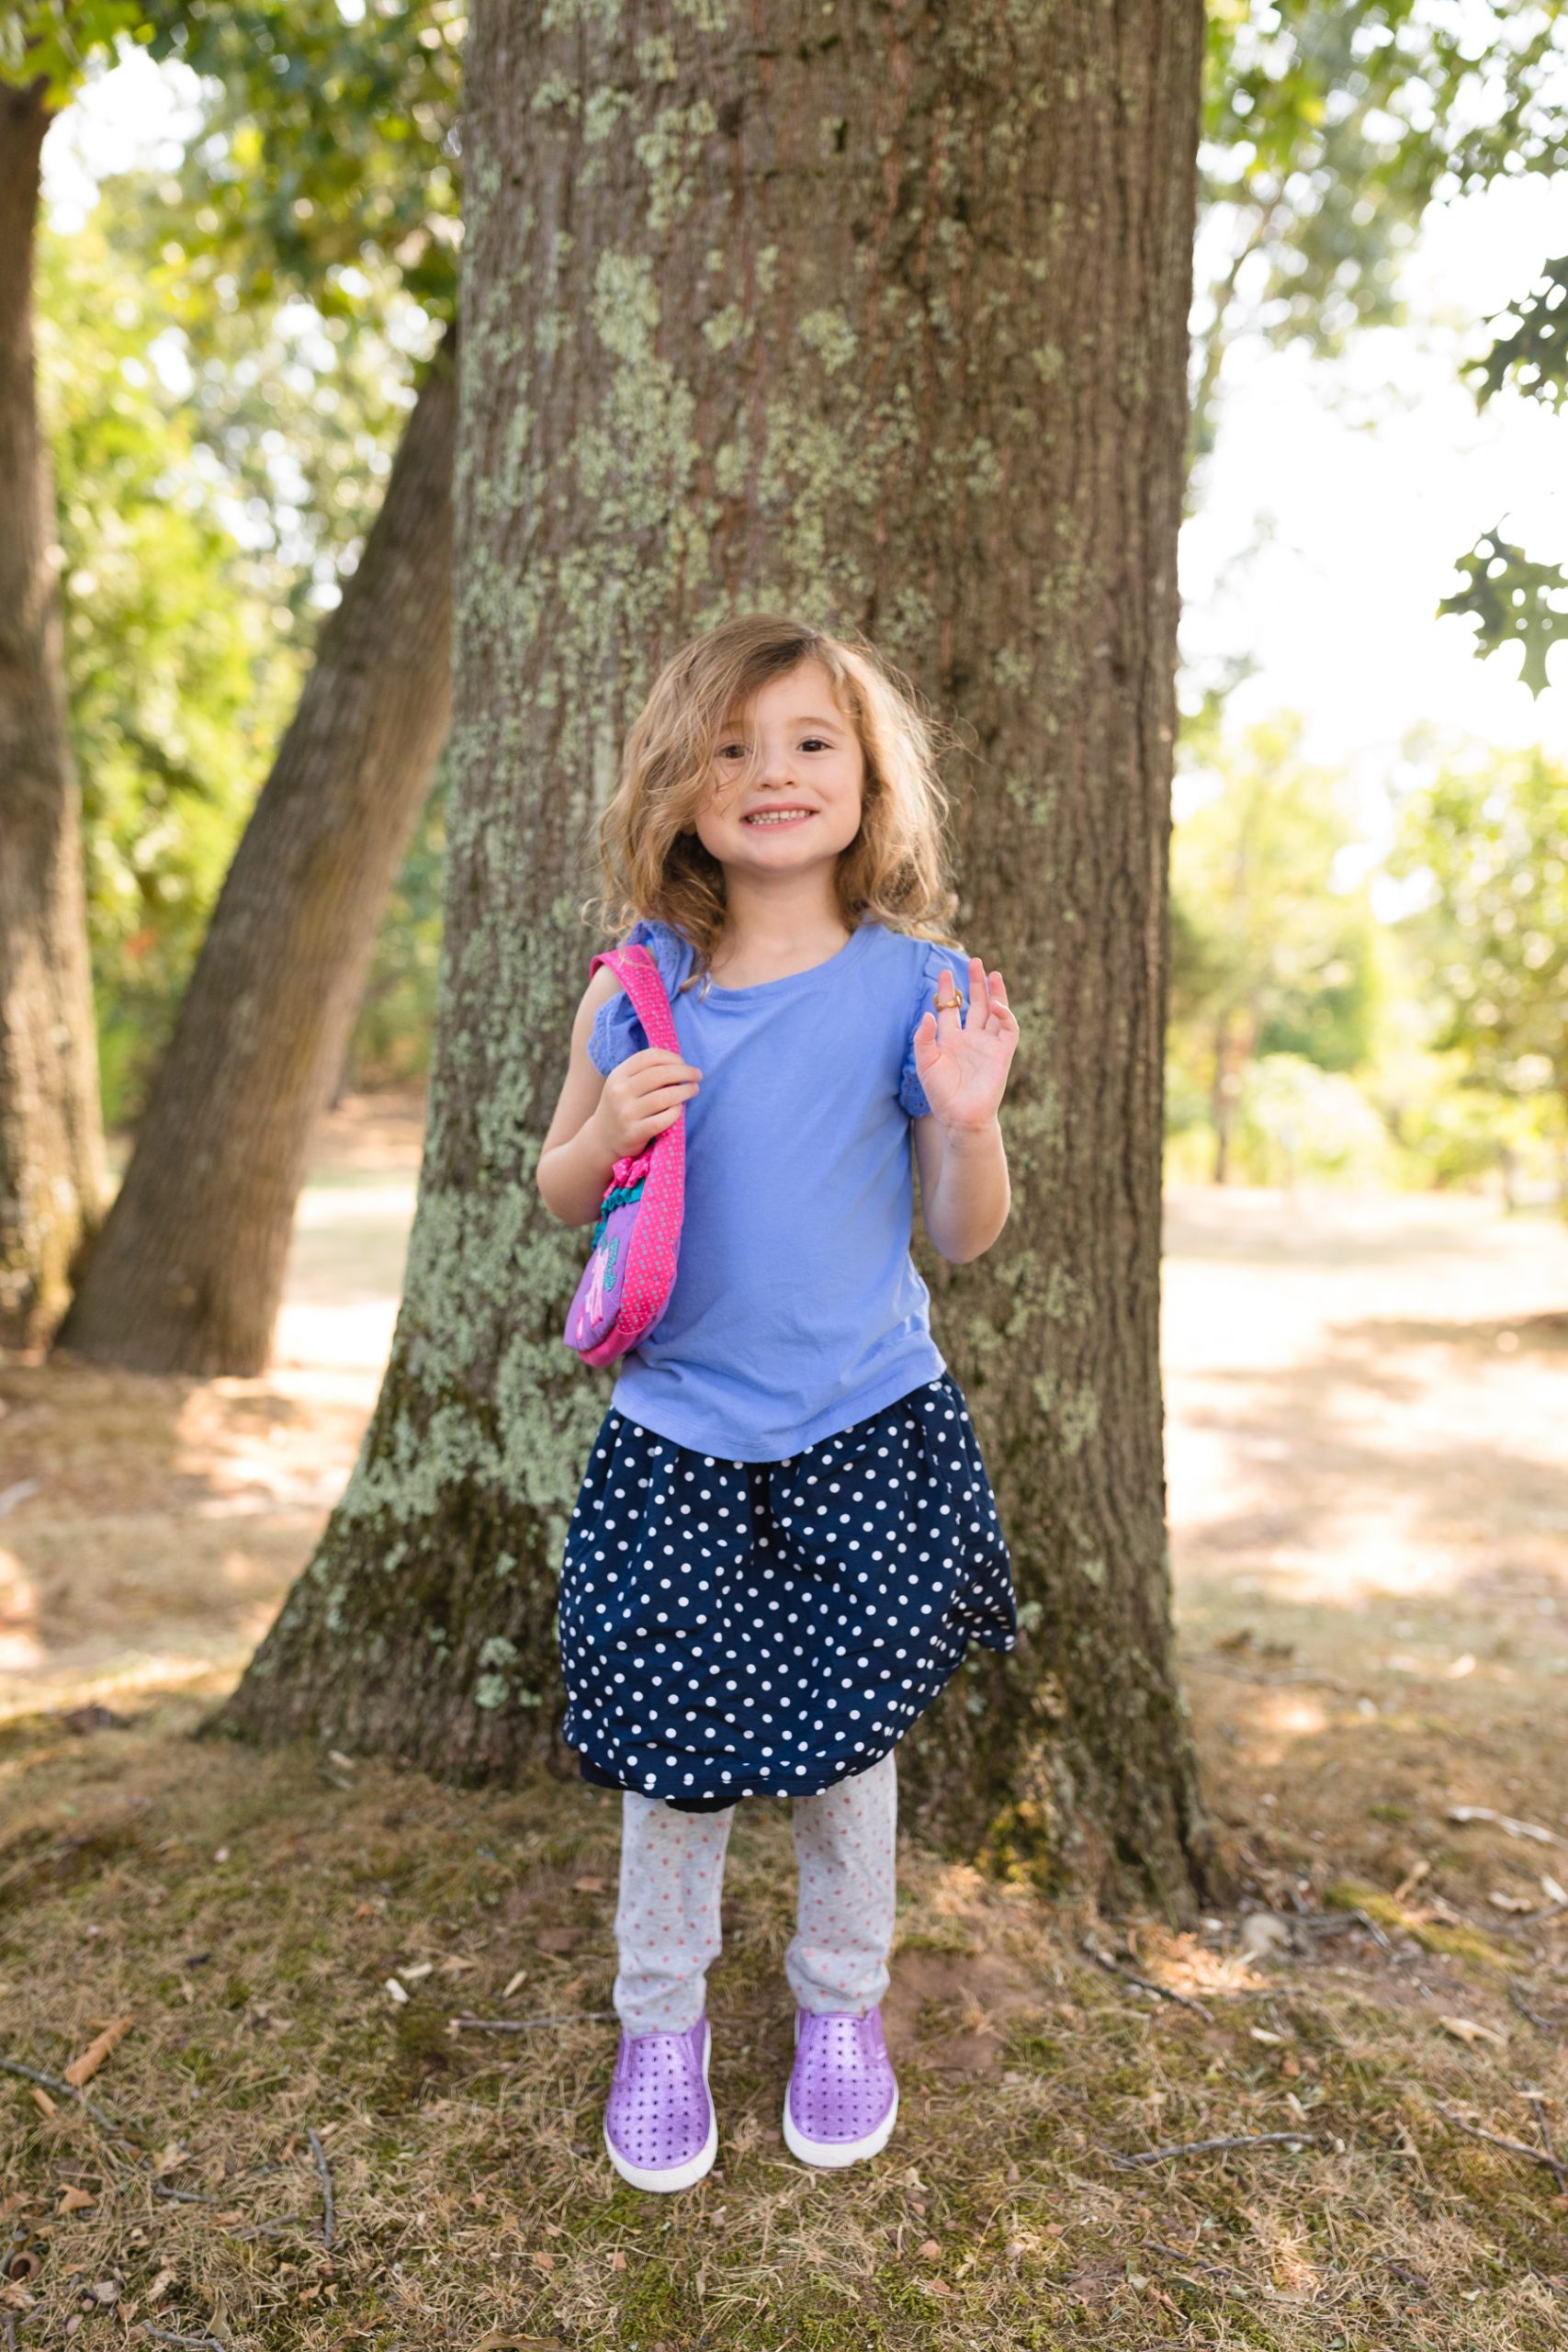 four year old in mismatched polka dot skirt, polka dot pants, purple shoes, purse